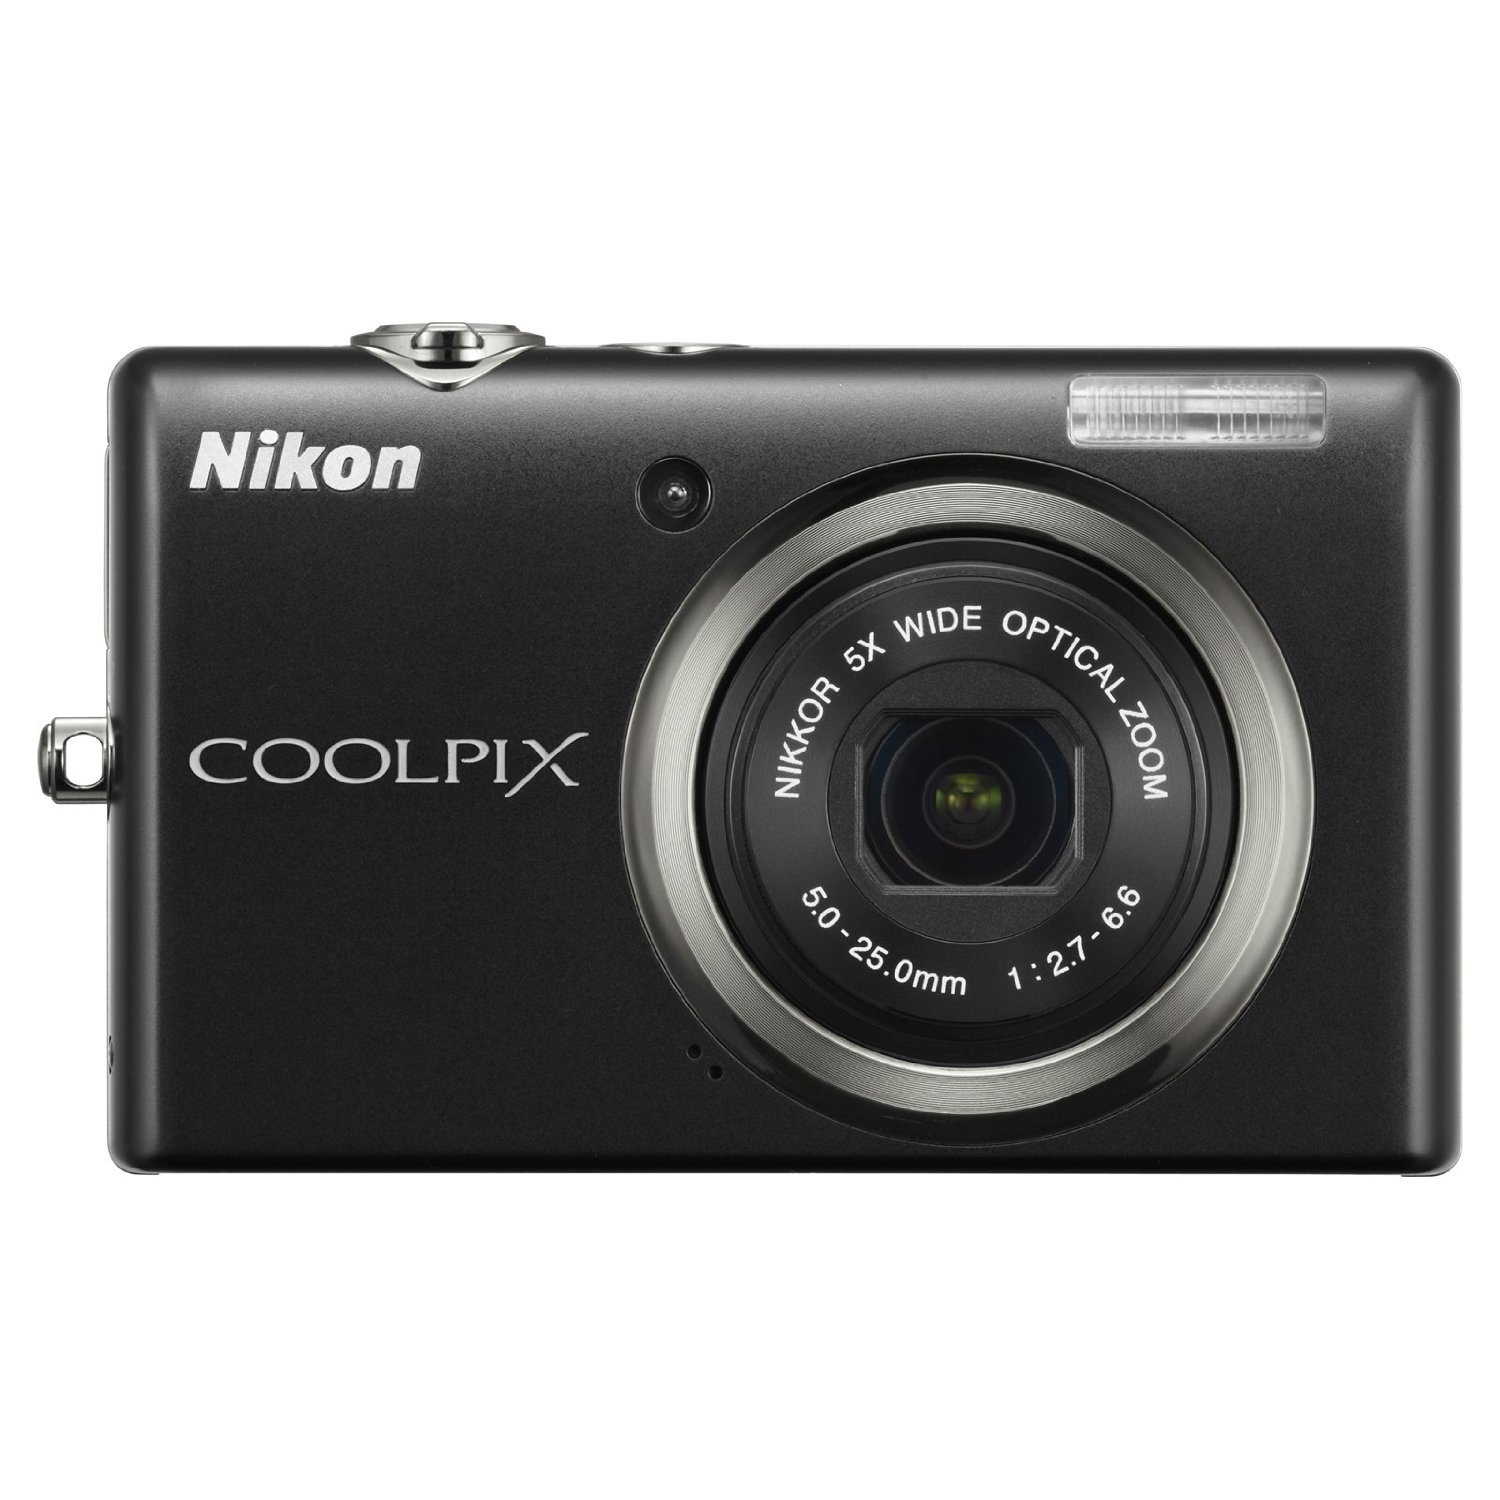 Nikon Coolpix S570 12MP Digital Camera 5x zoom | ClickBD large image 0